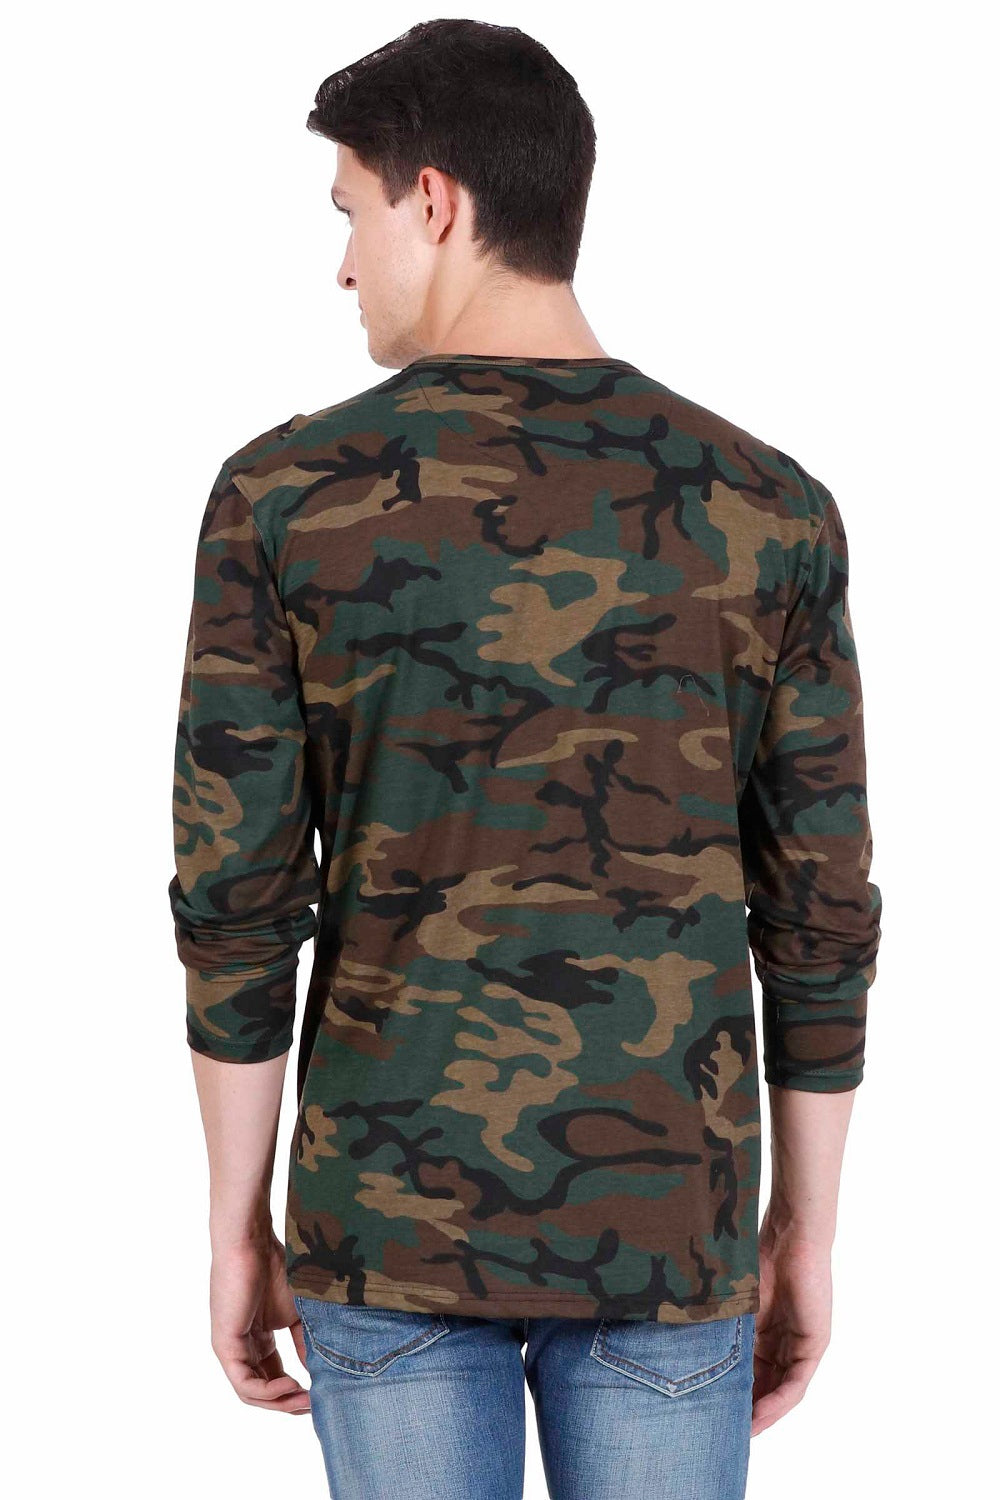 Hunt and Howe Men's Camouflage Full Sleeve T-Shirt